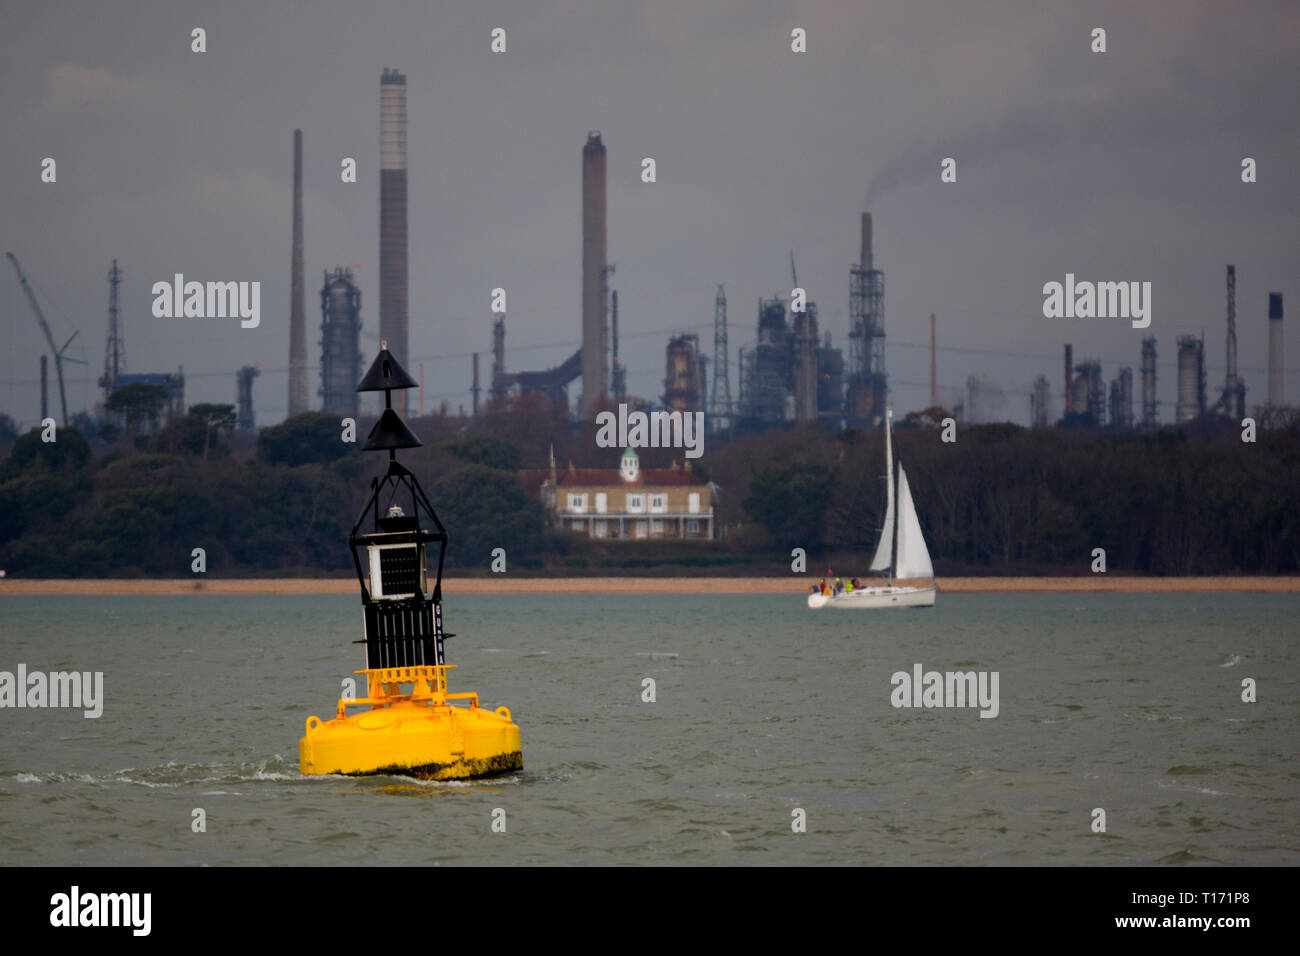 bouy,cardinal,mark,navigation,yacht,sailing,past,Fawley,Oil,Refinery,The Solent,Cowes,Isle of Wight, England,UK, - Stock Image